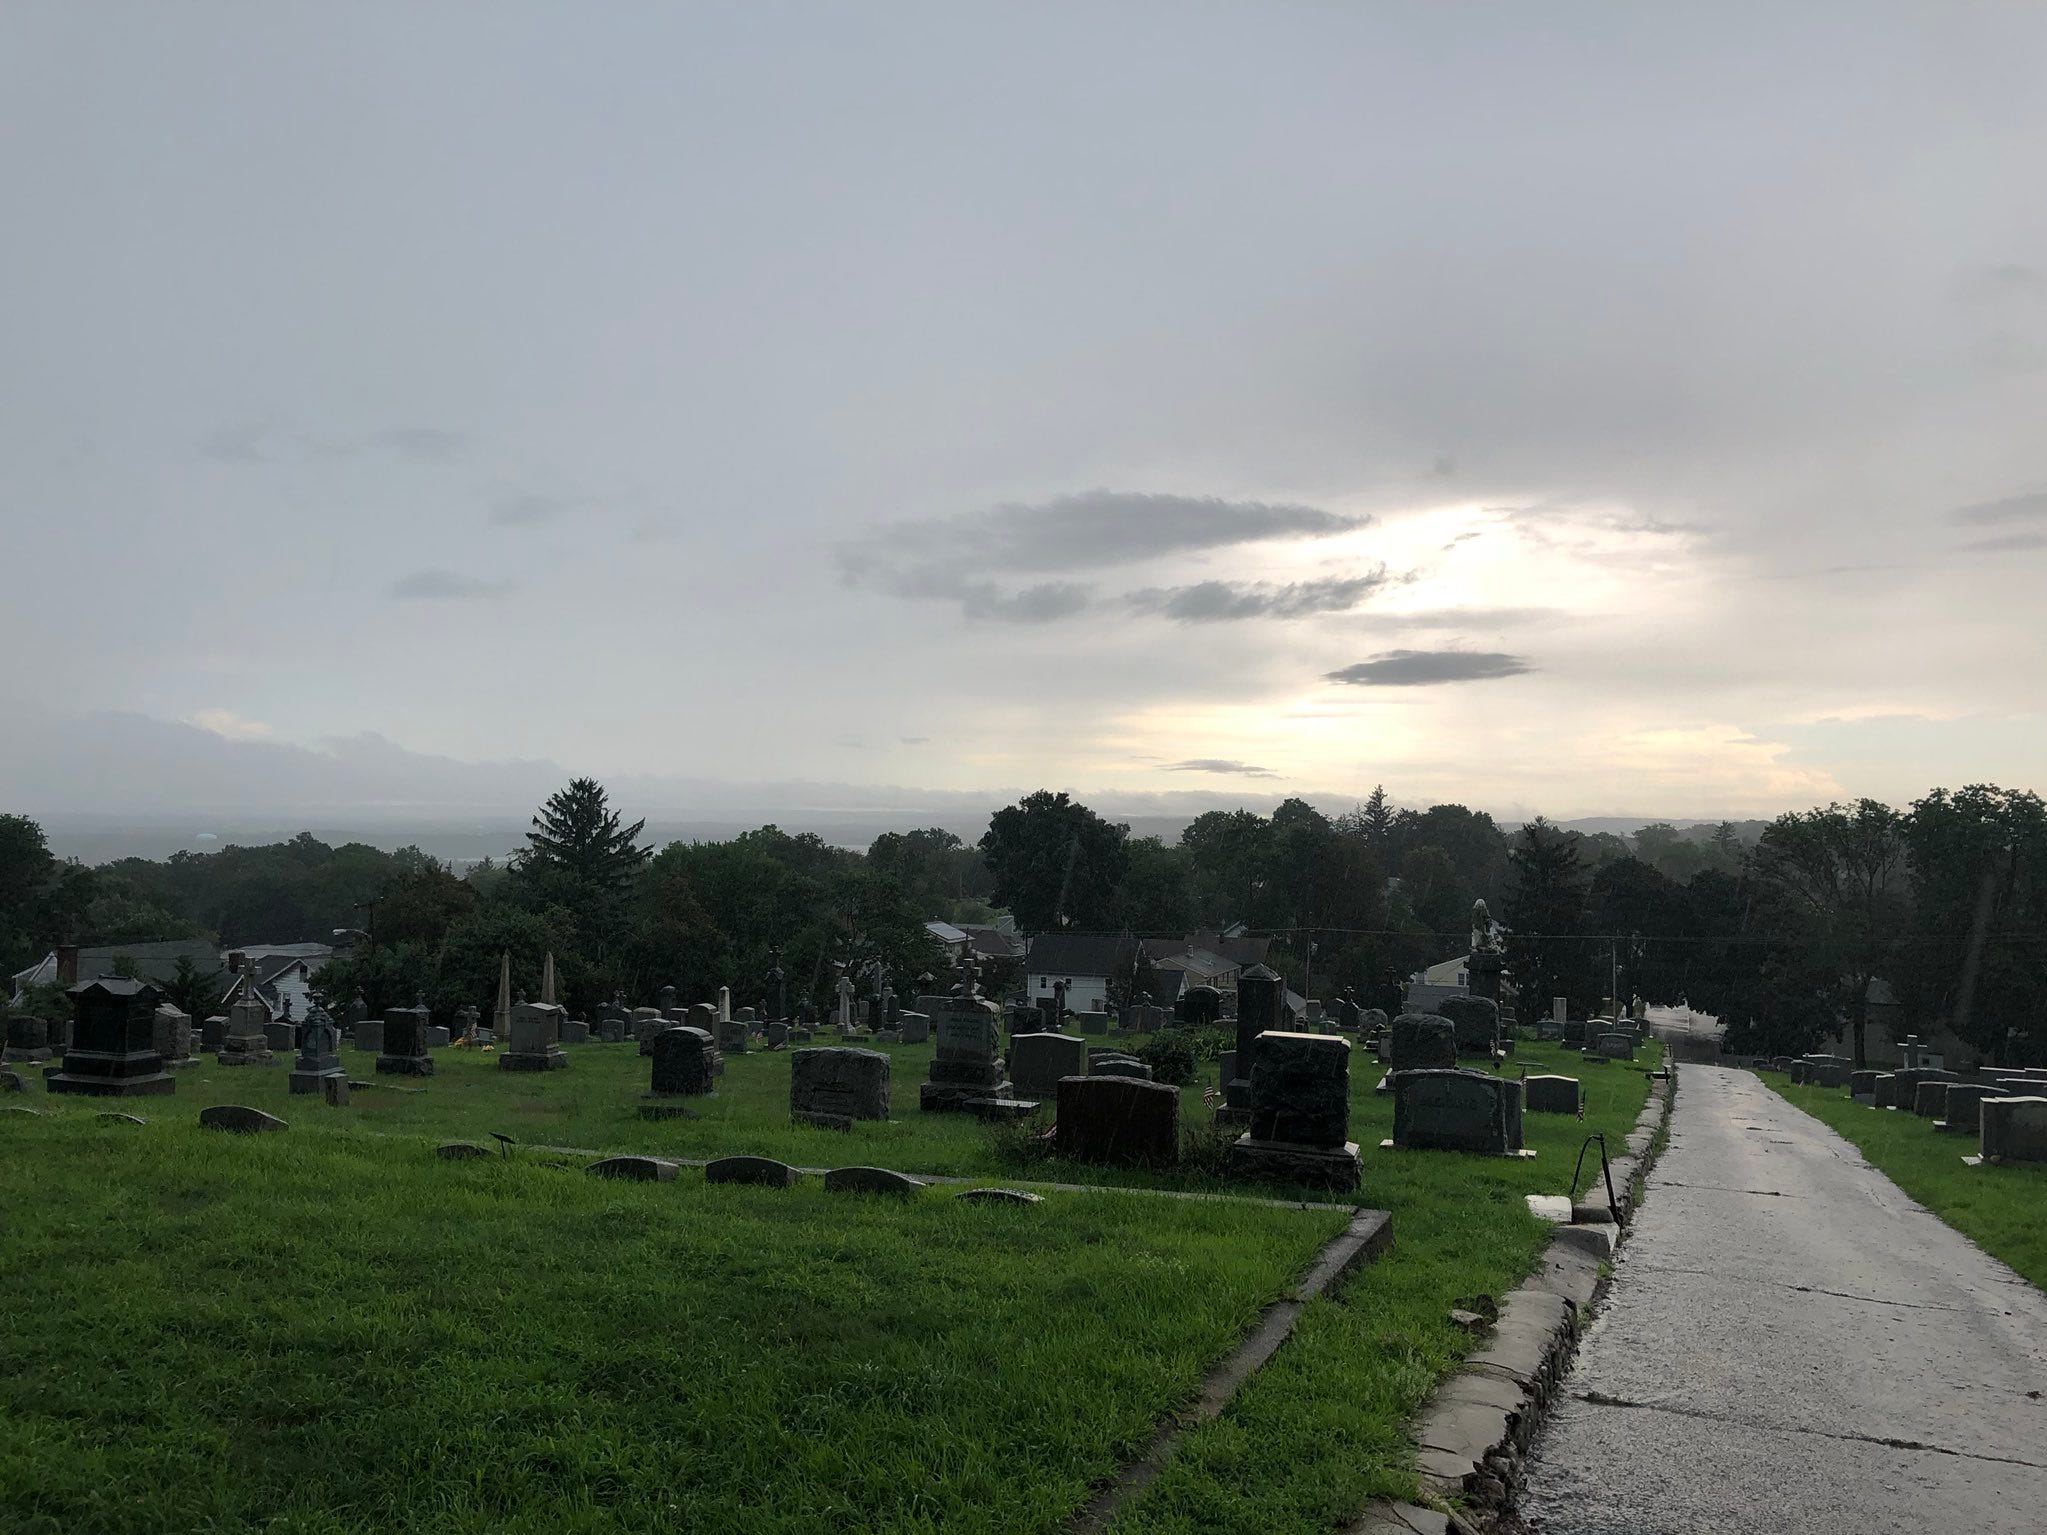 Storm clouds over Boonton Aug. 3, 2018.